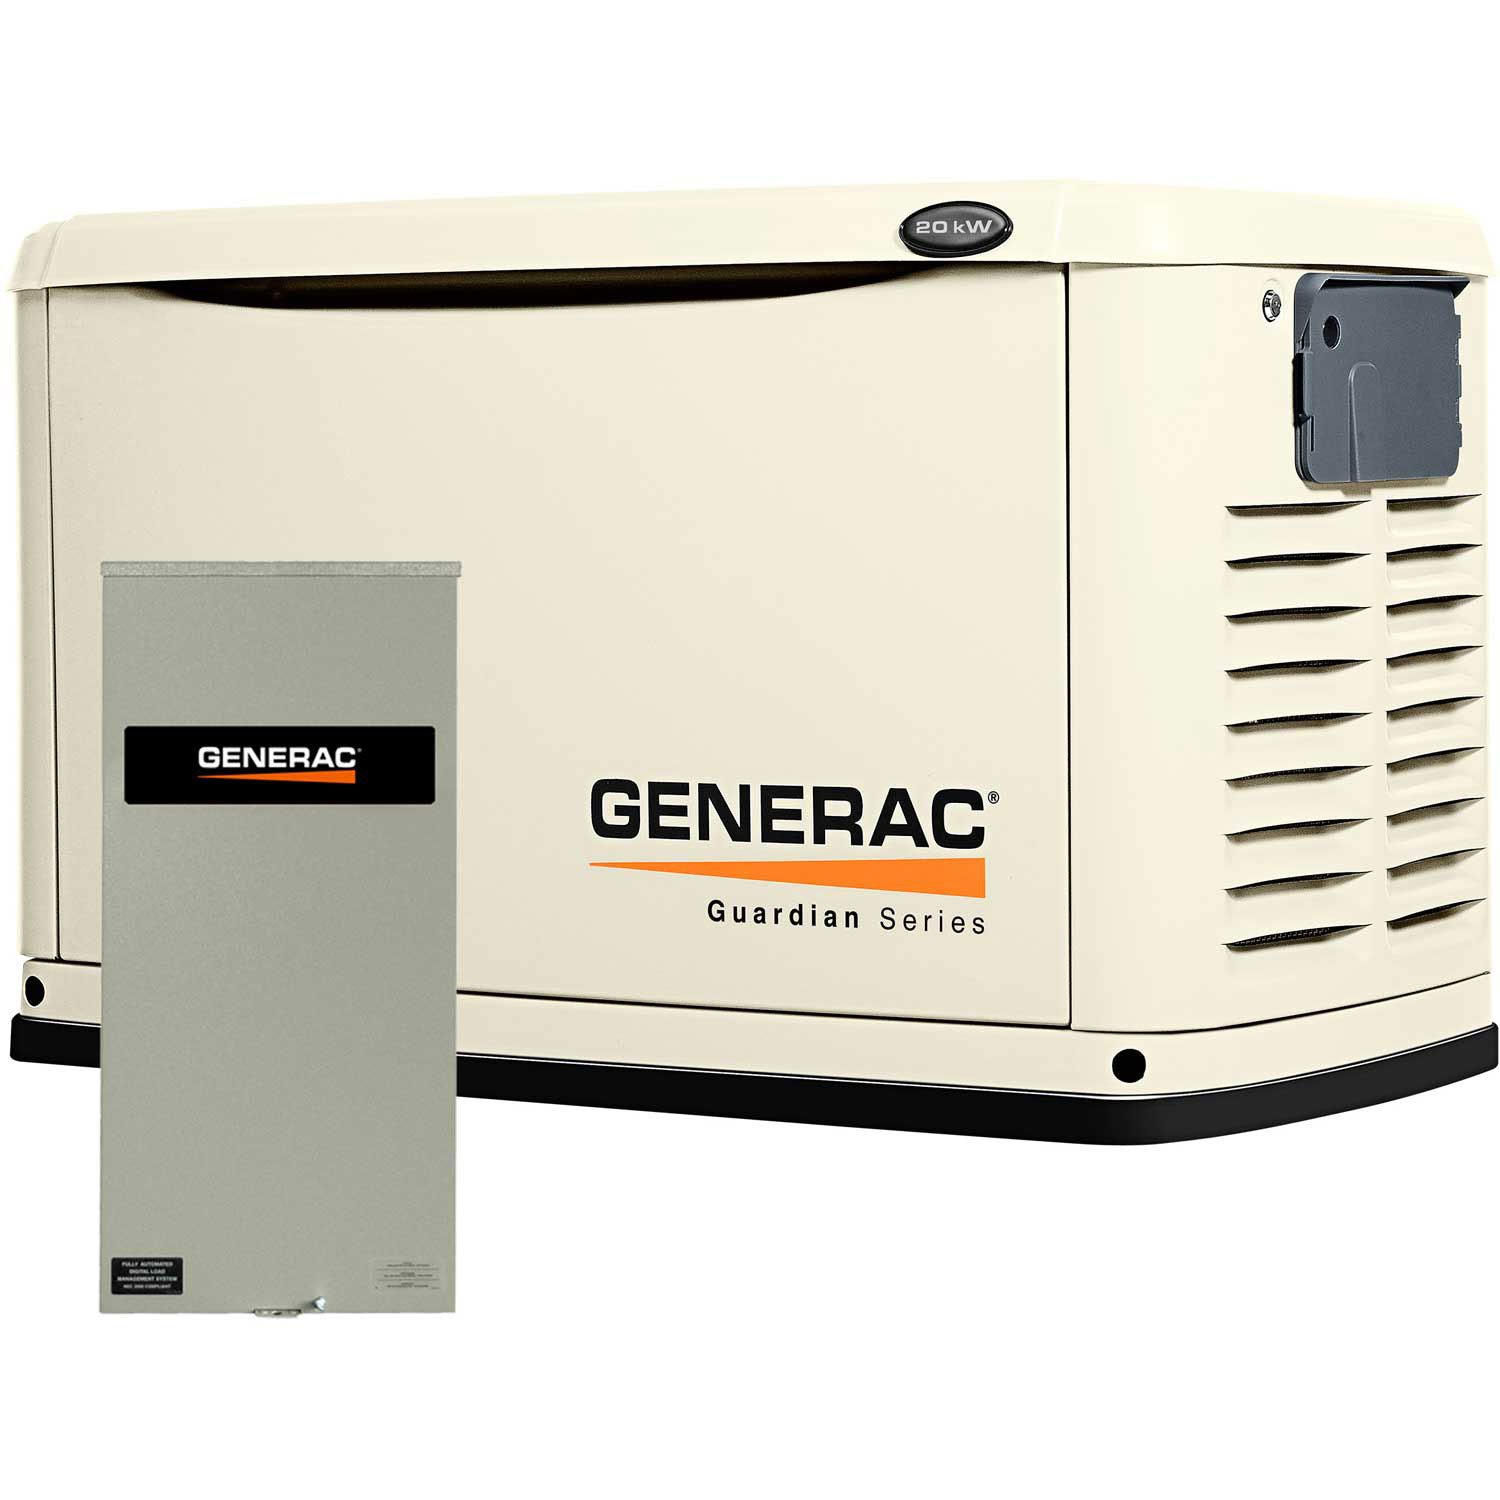 Generac 6729 Guardian Series, 20kW Air Cooled Standby Generator, Natural Gas/Liquid Propane Powered, Steel Enclosed, with 200-Amp Service Rated Switch